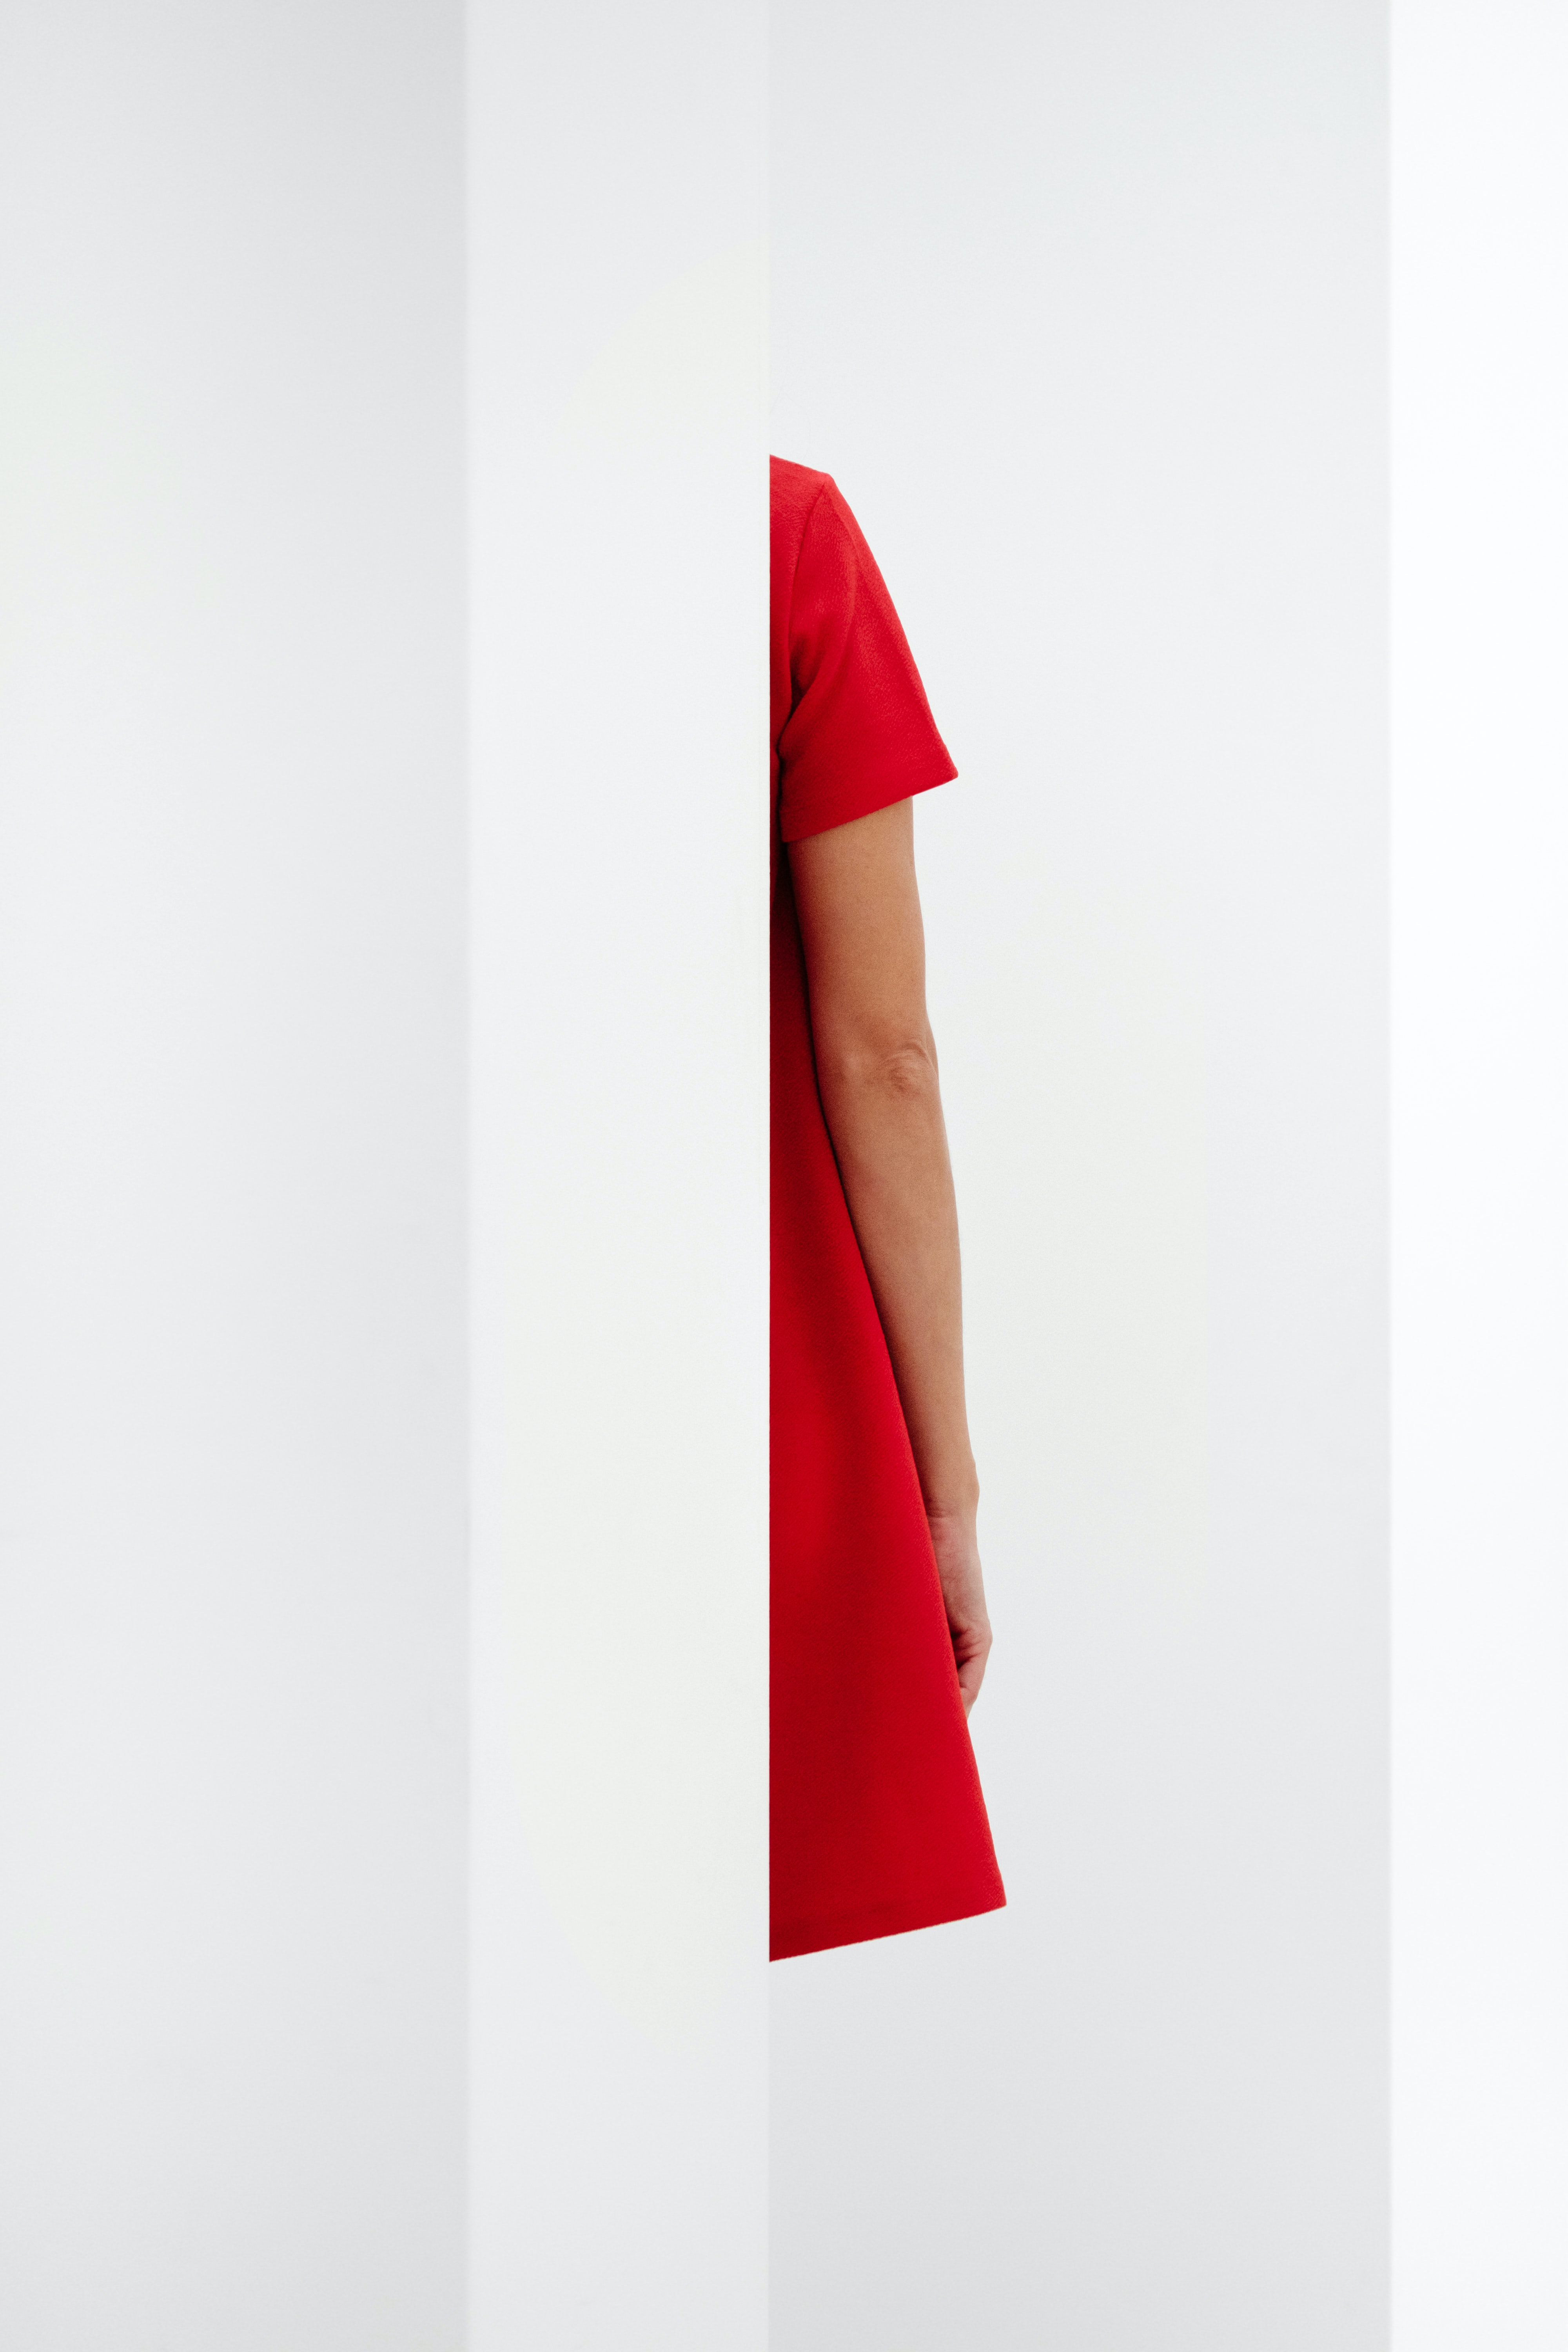 person in red top standing behind wall